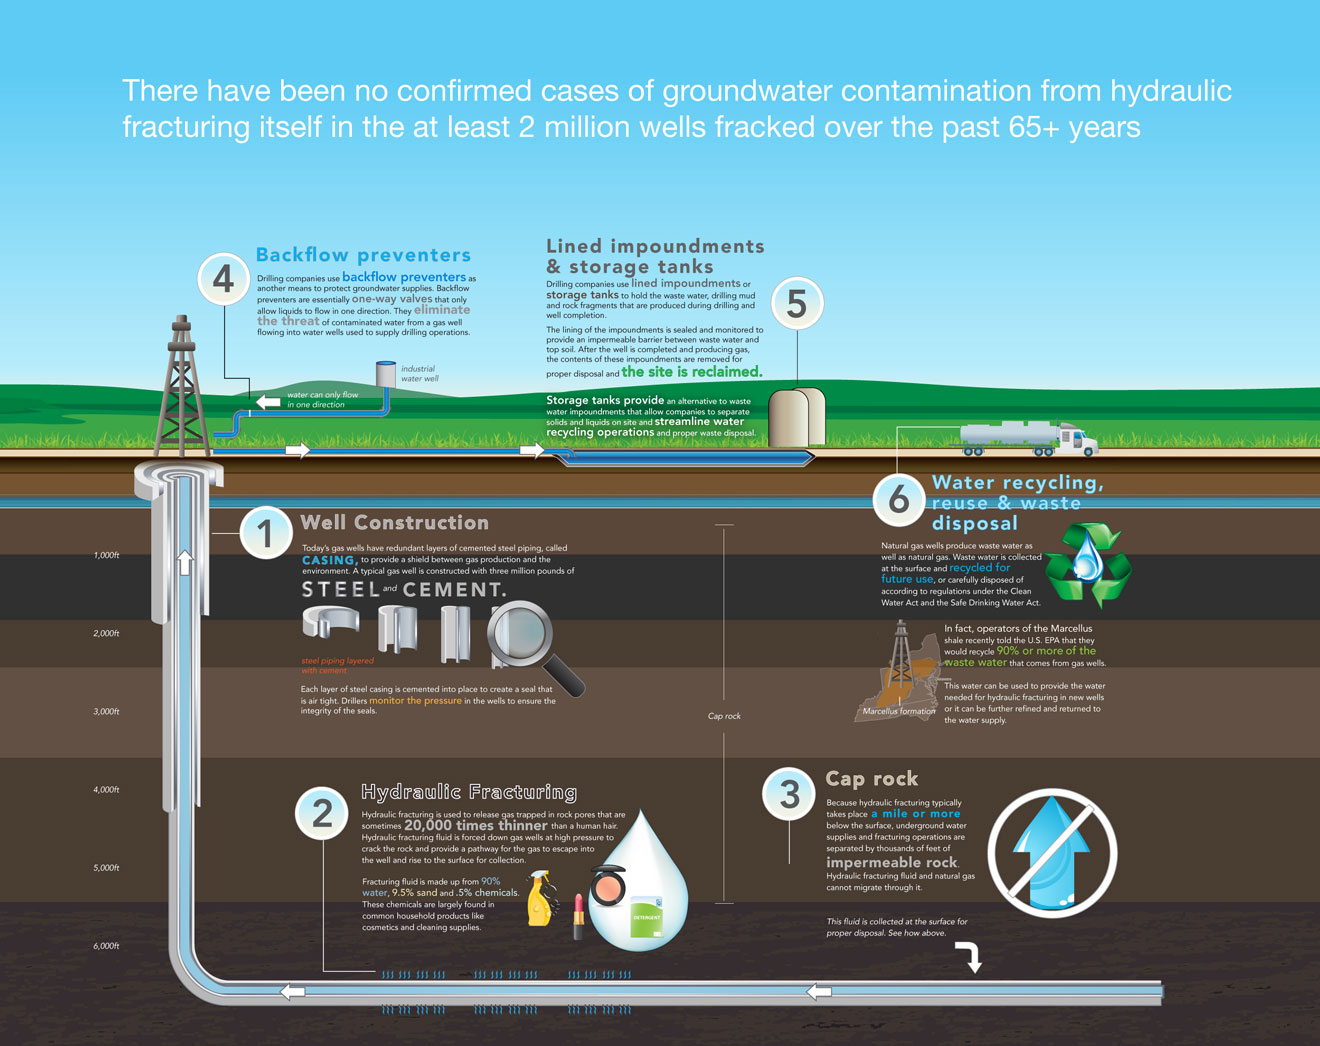 Is Fracking For Oil Or Natural Gas